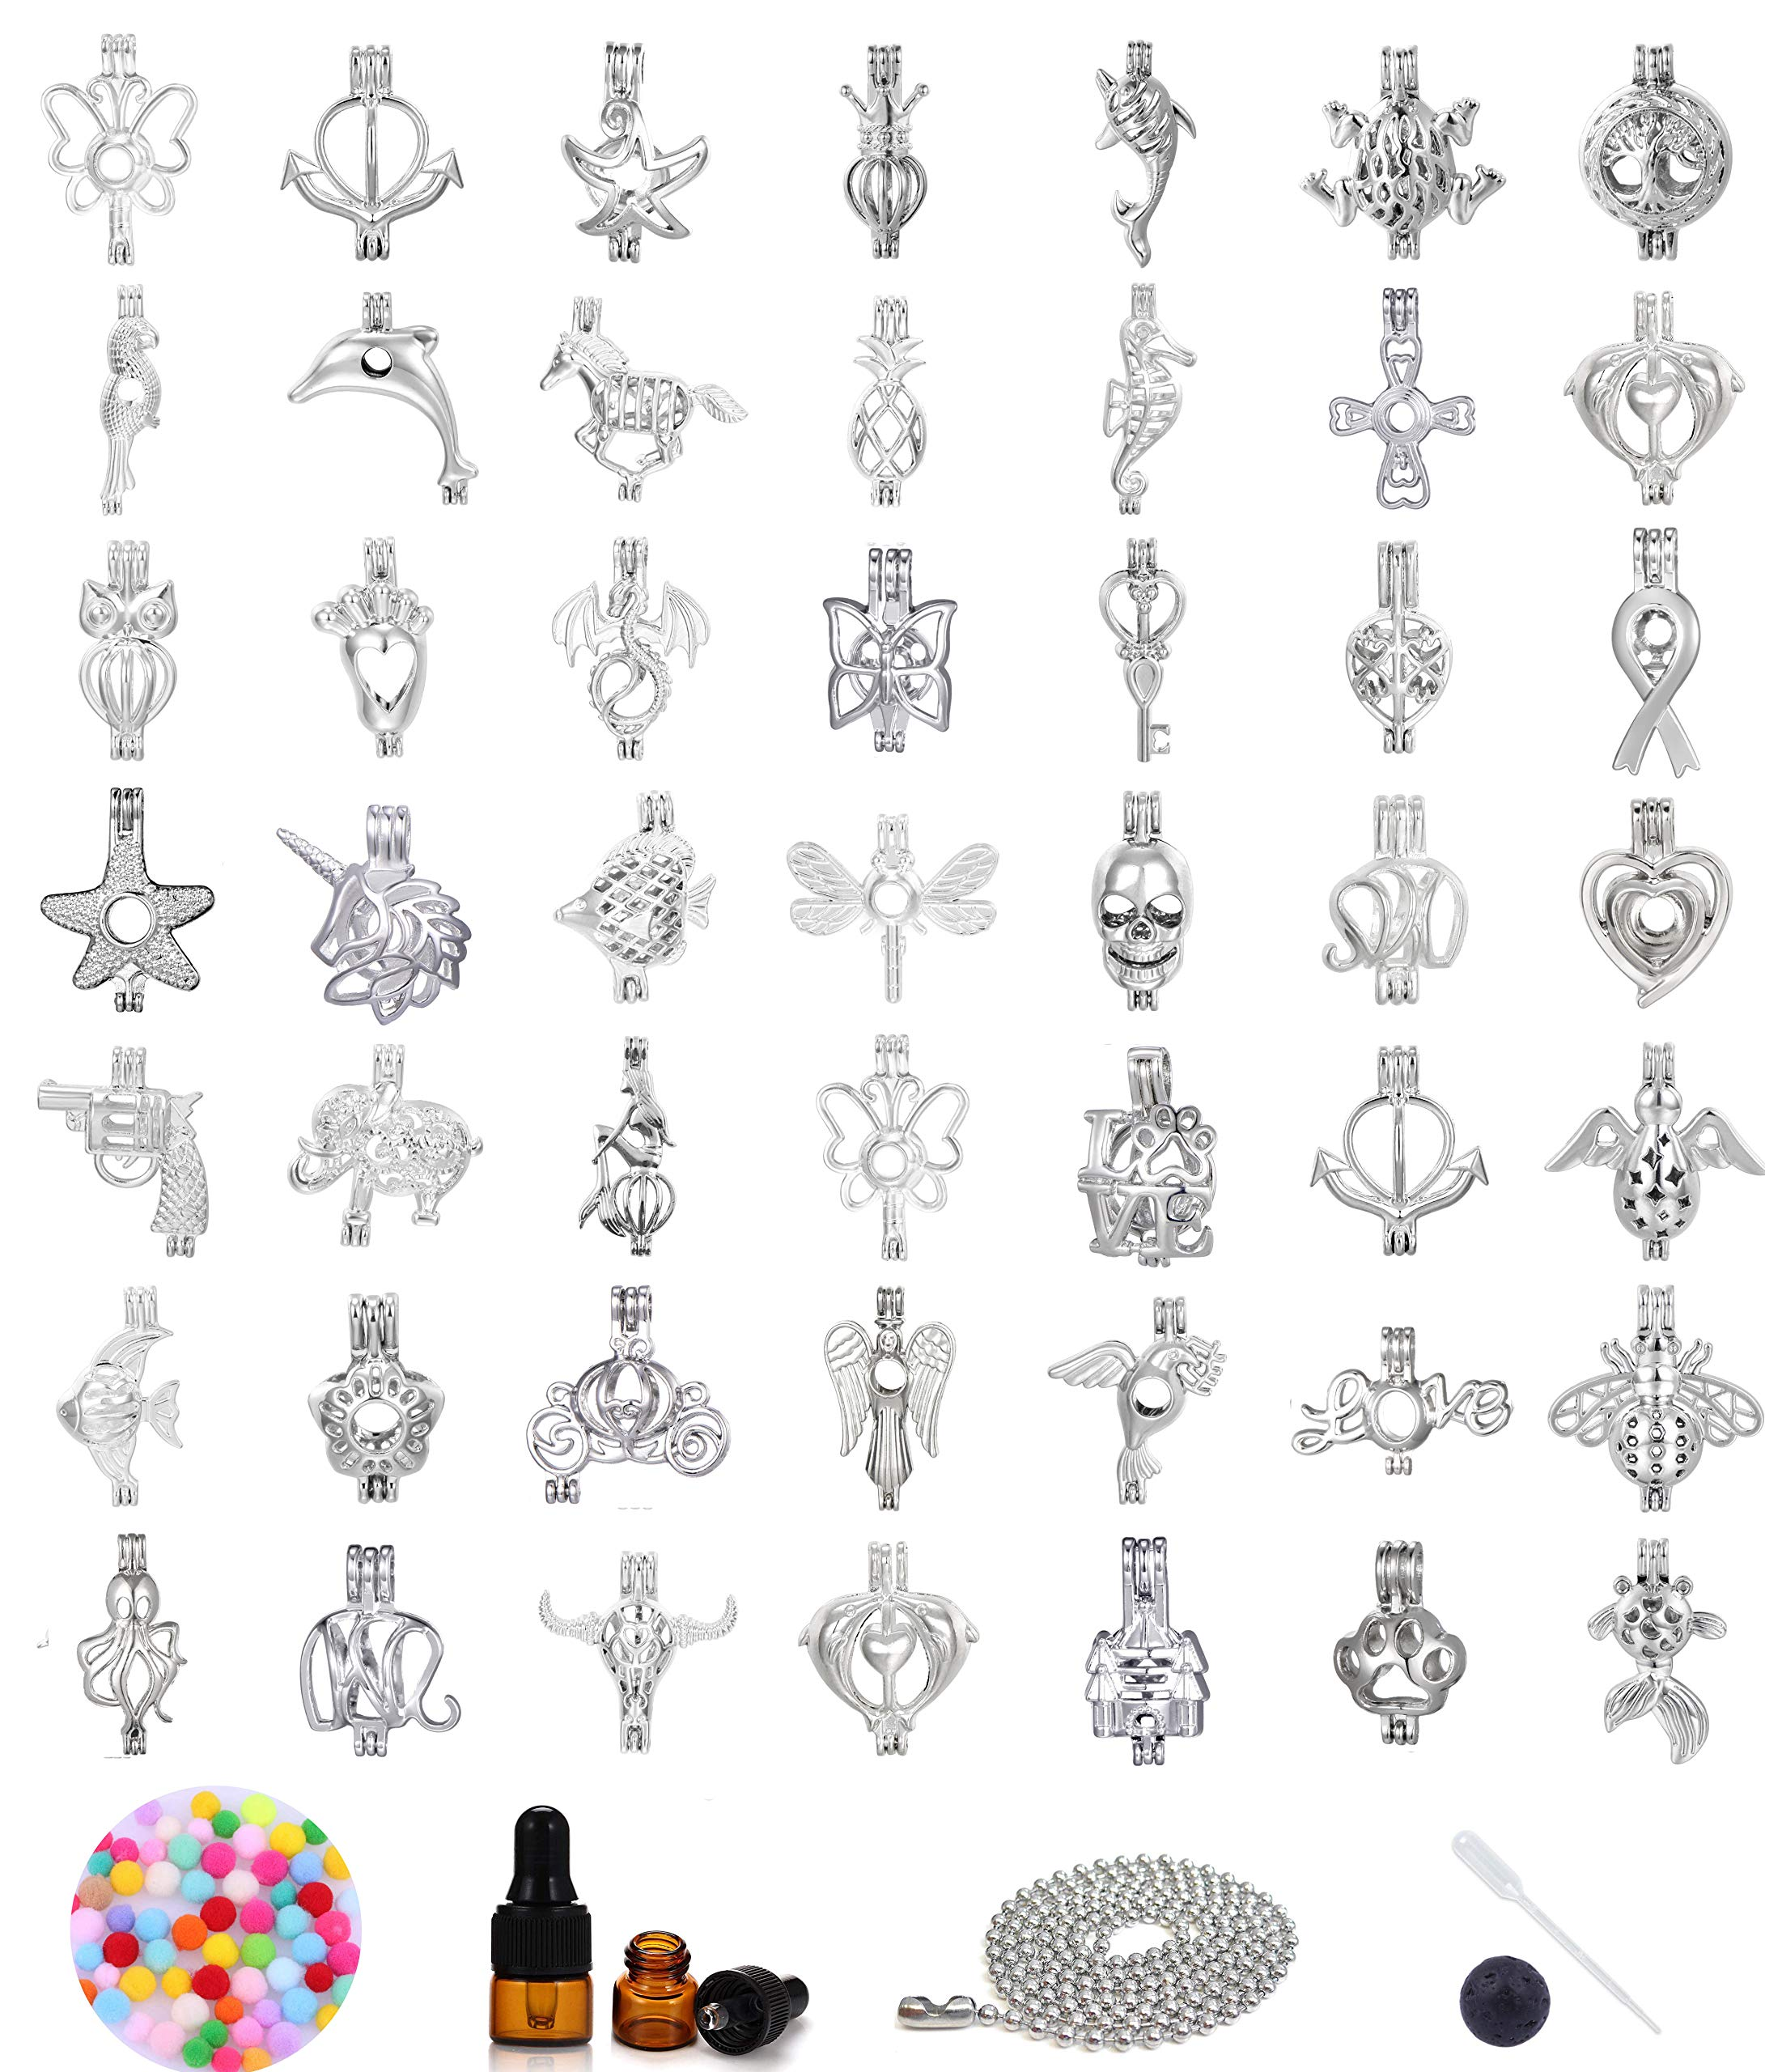 30pcs Mix Stainless Steel Tones Alloy Bead Cage Pendant - Add Your Own Pearls, Stones, Rock to Cage,Add Perfume and Essential Oils to Create a Scent Diffusing Locket Pendant Christmas Gift Charms by Yaoding (Image #1)